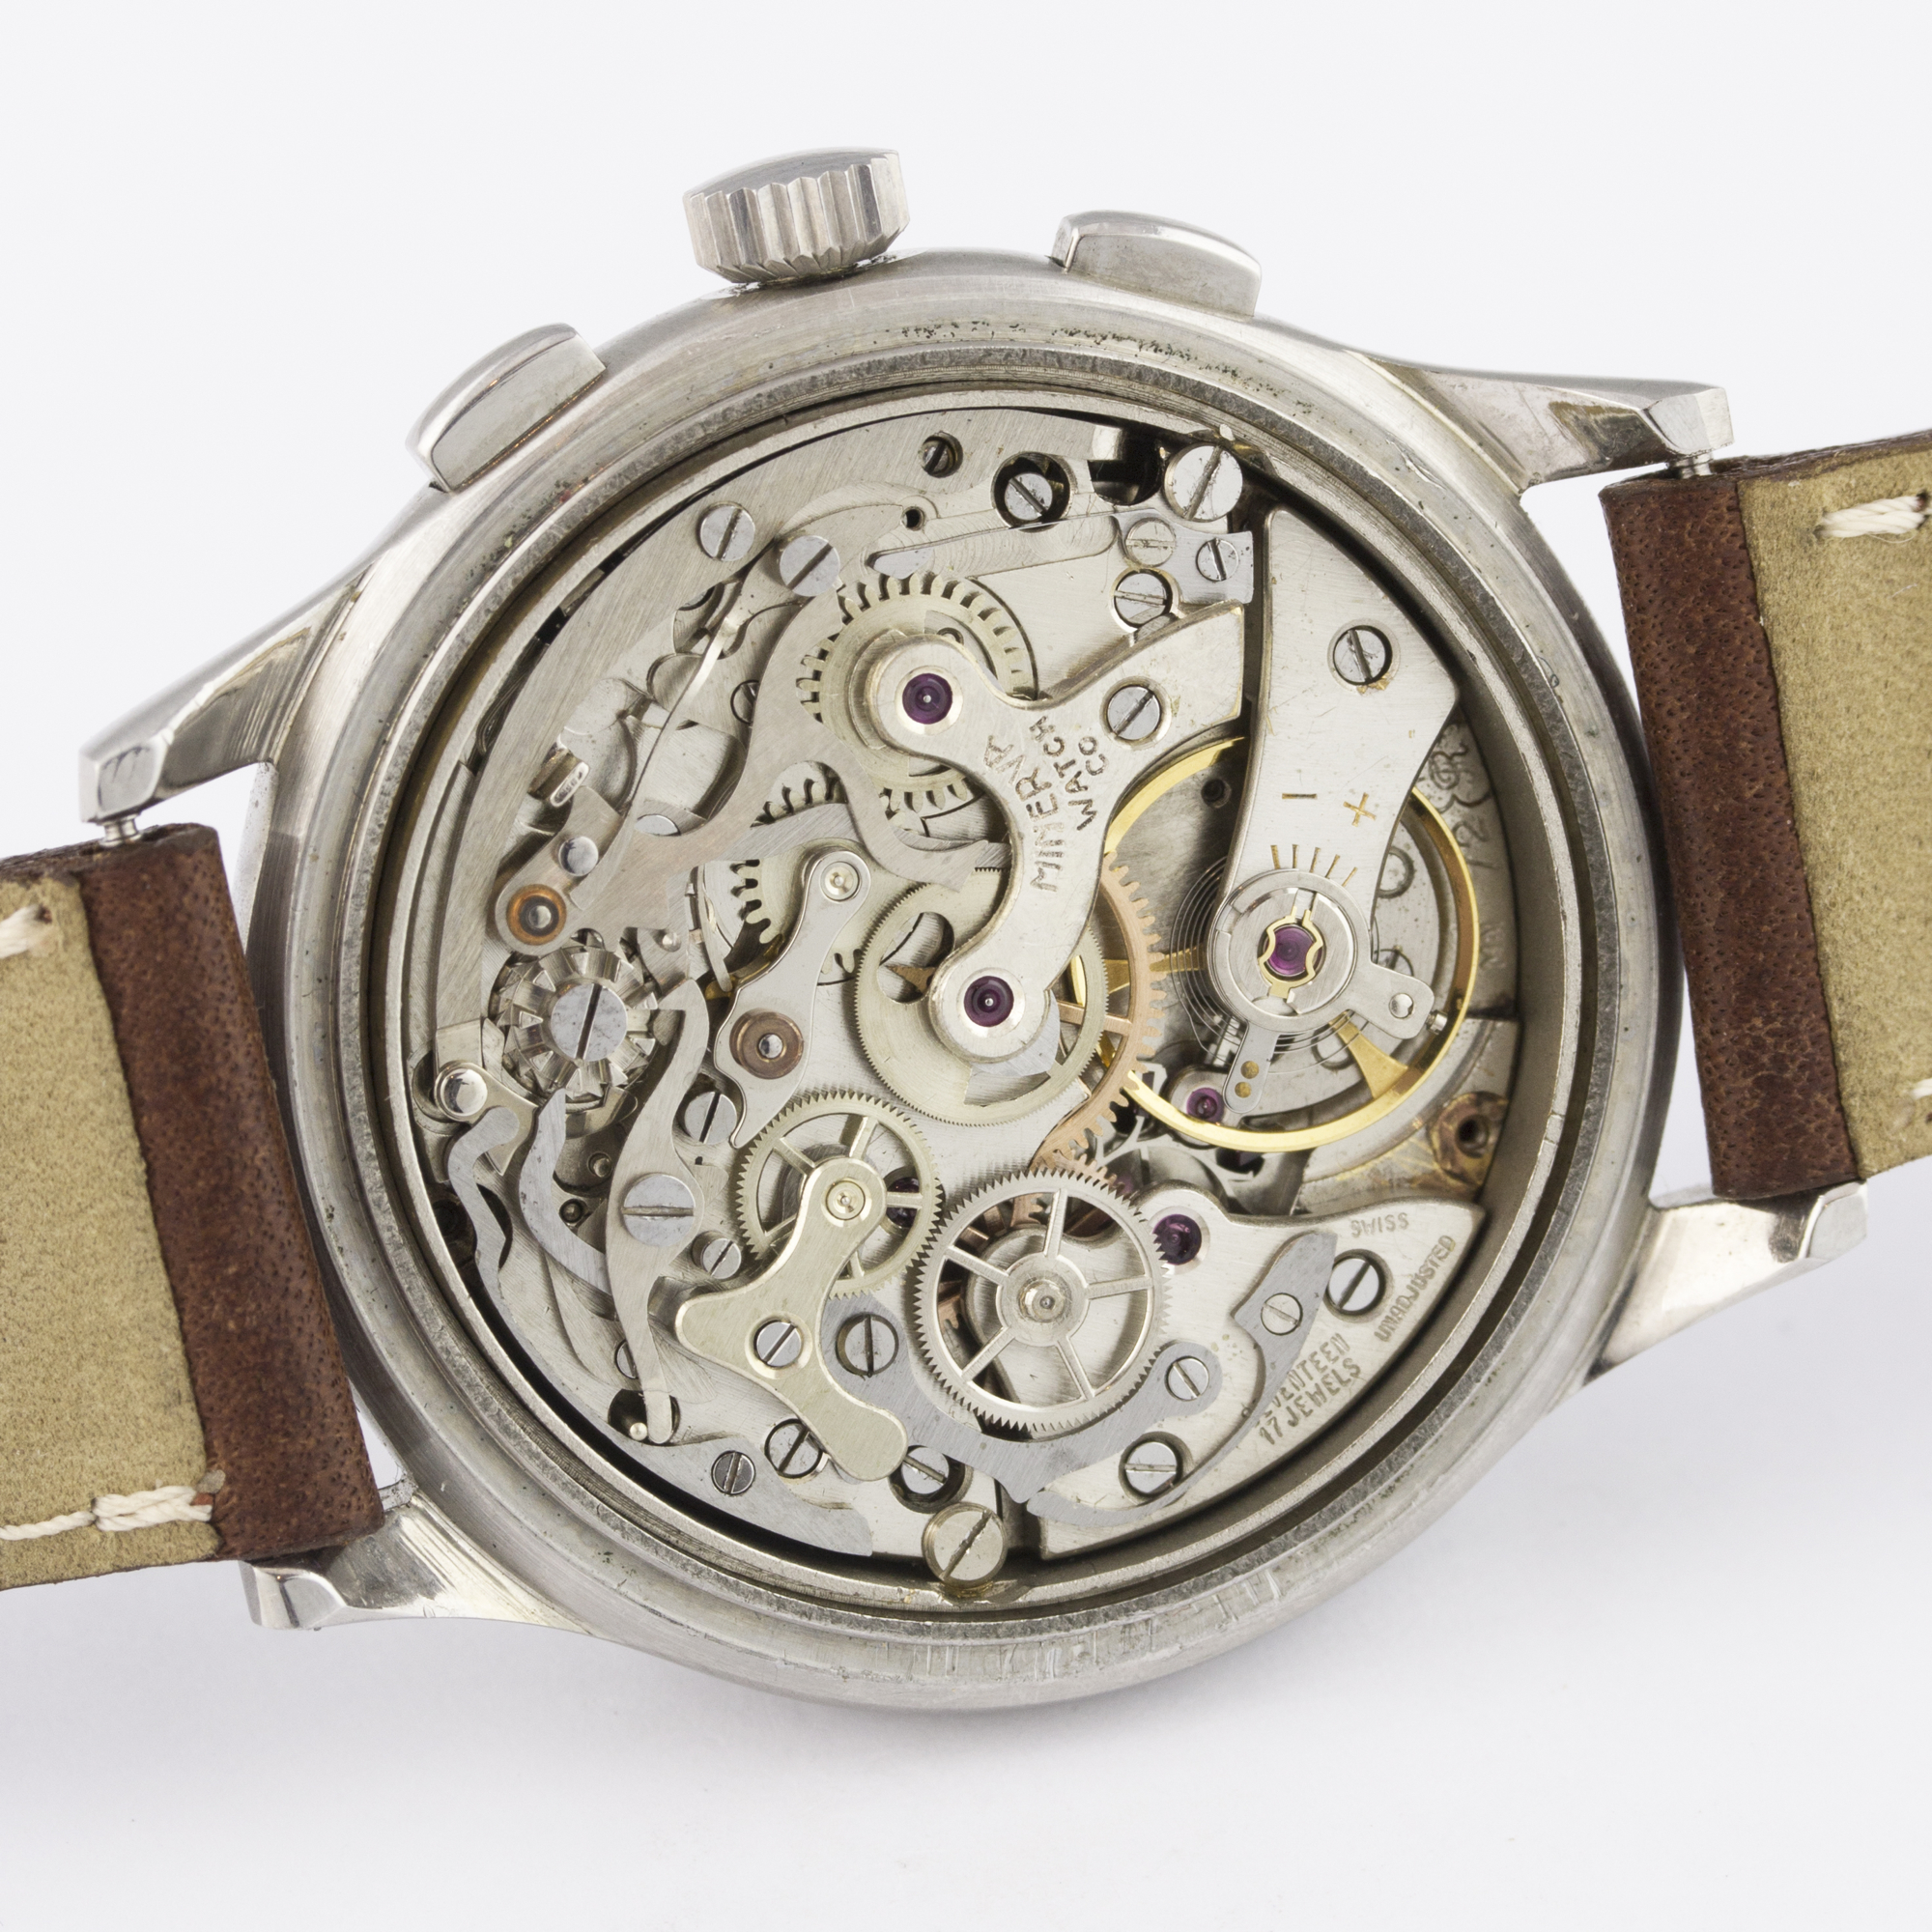 A RARE GENTLEMAN'S STAINLESS STEEL MINERVA DECIMAL CHRONOGRAPH WRIST WATCH CIRCA 1950s D: Silver - Image 8 of 9